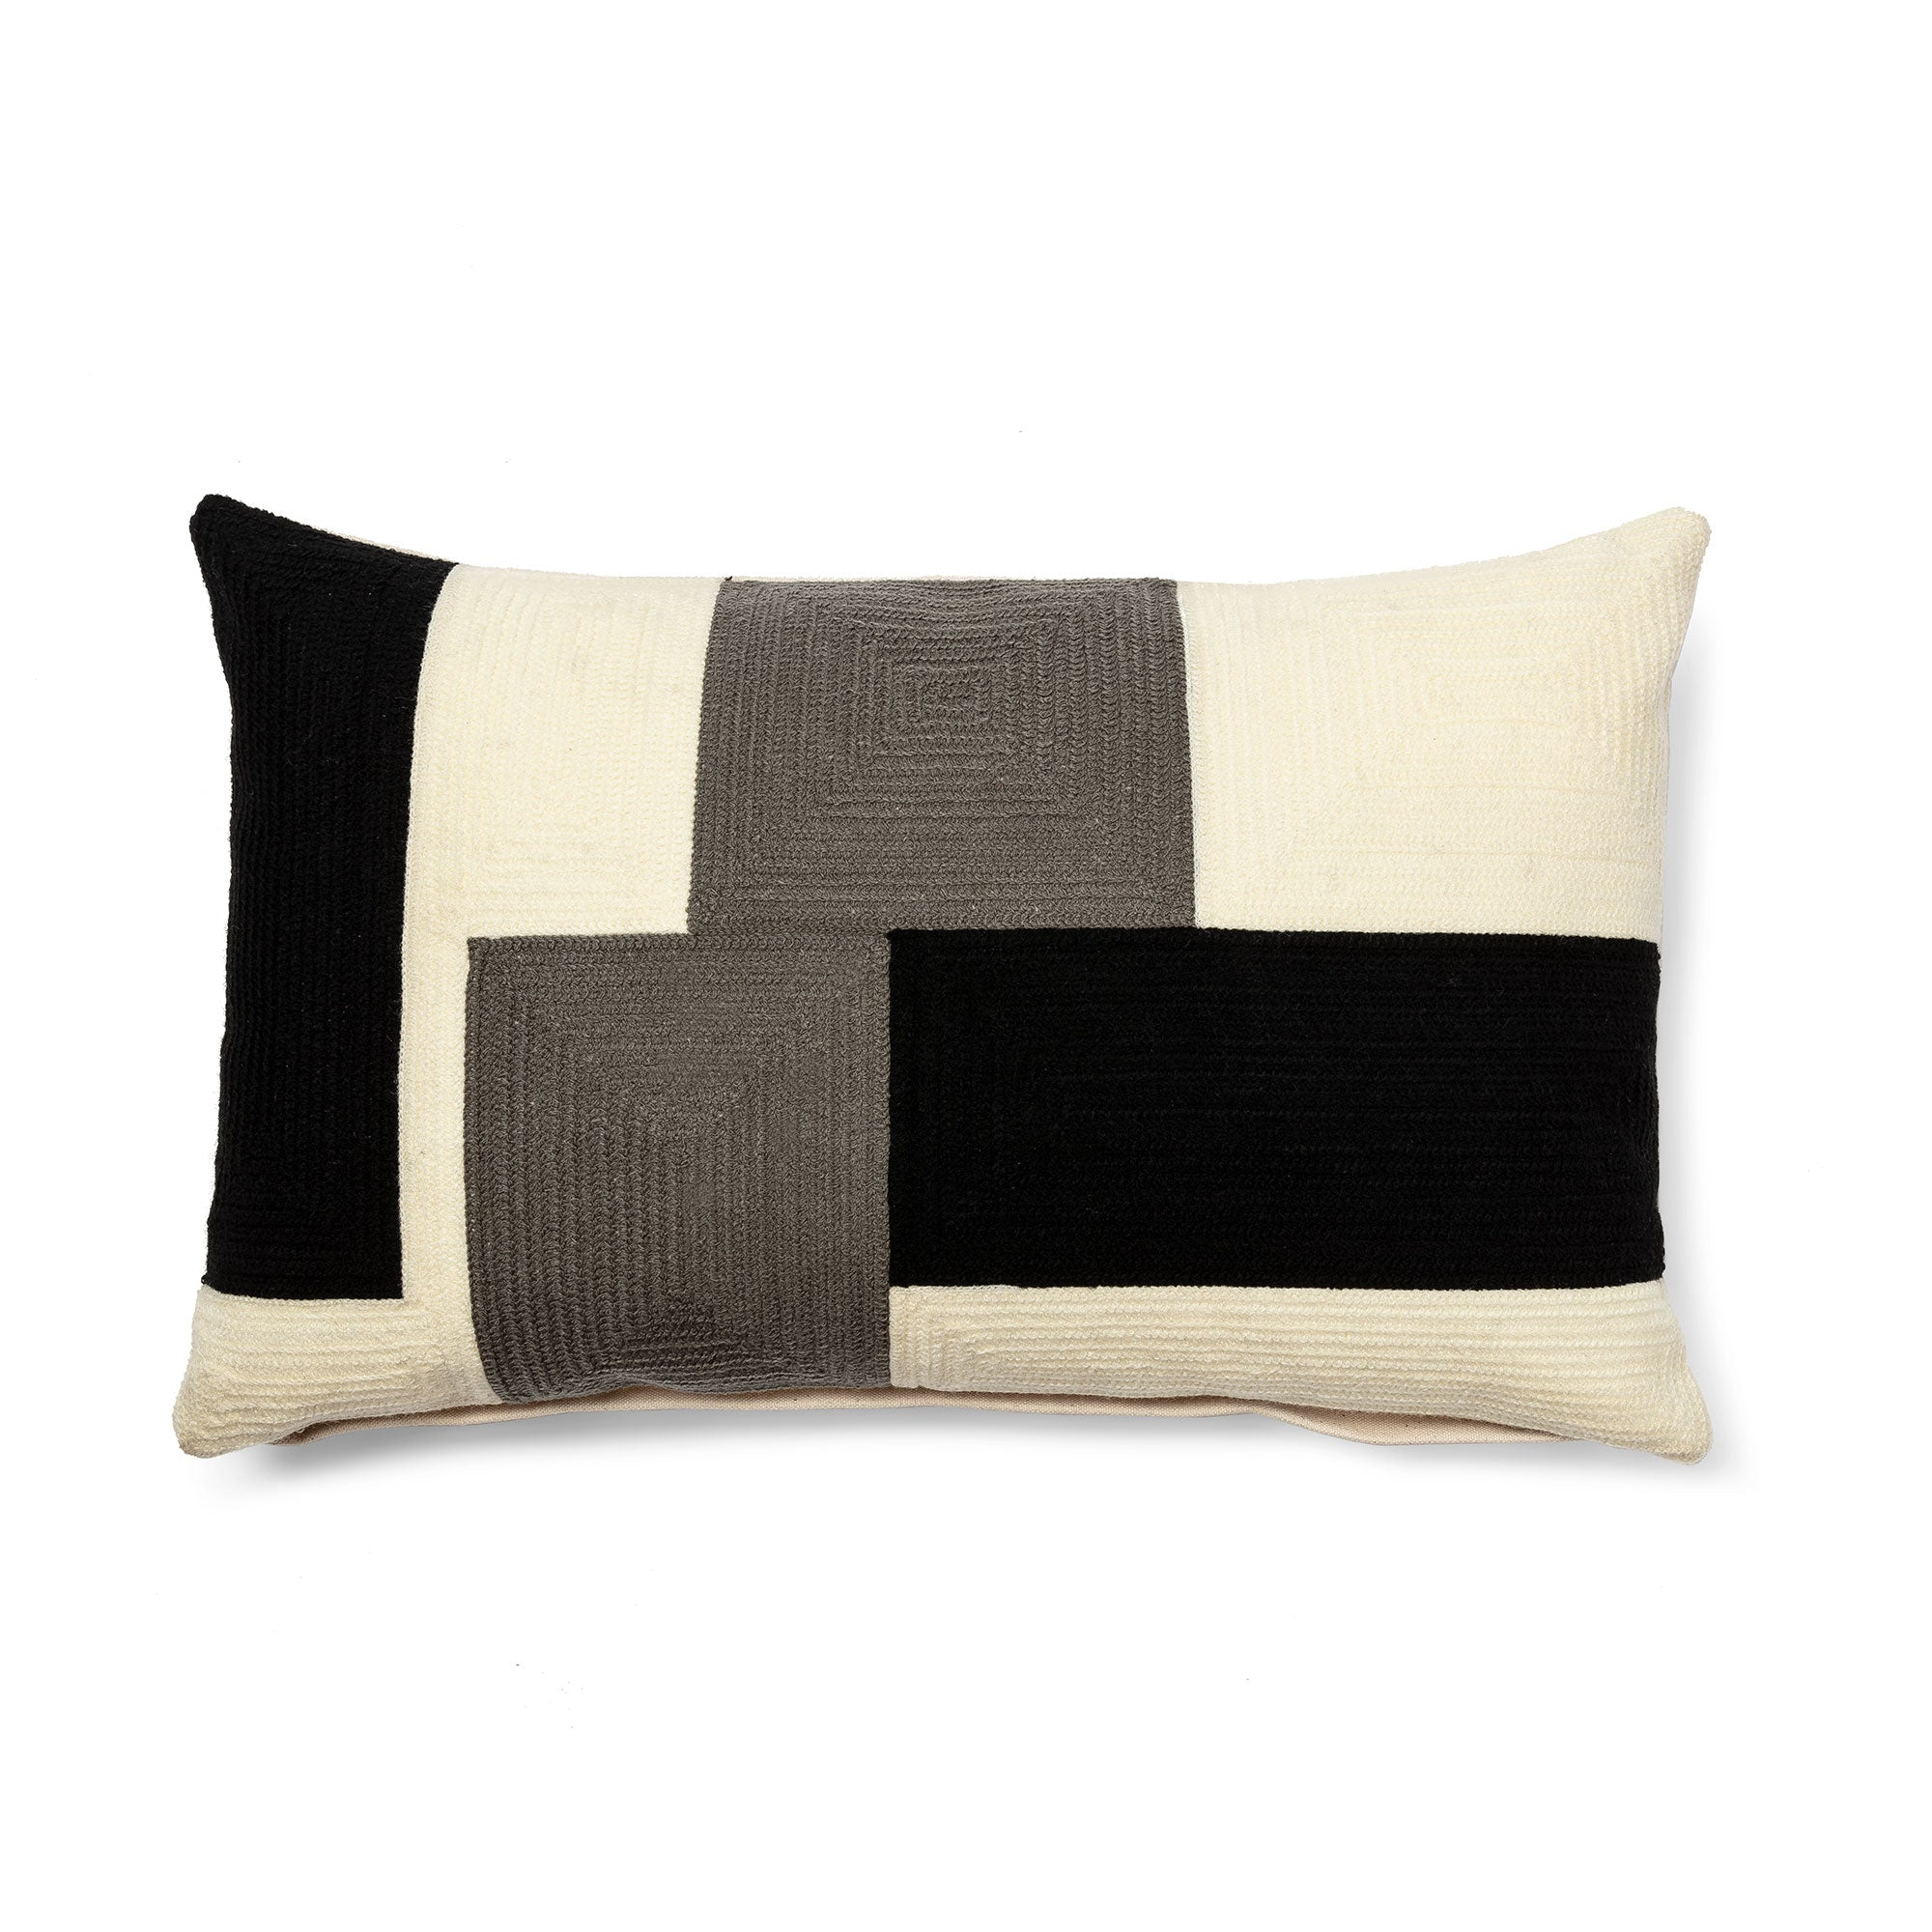 Knowles Cushion - Multicoloured with Zipper 30 x 50cm, Cushion - Home-Buy Interiors